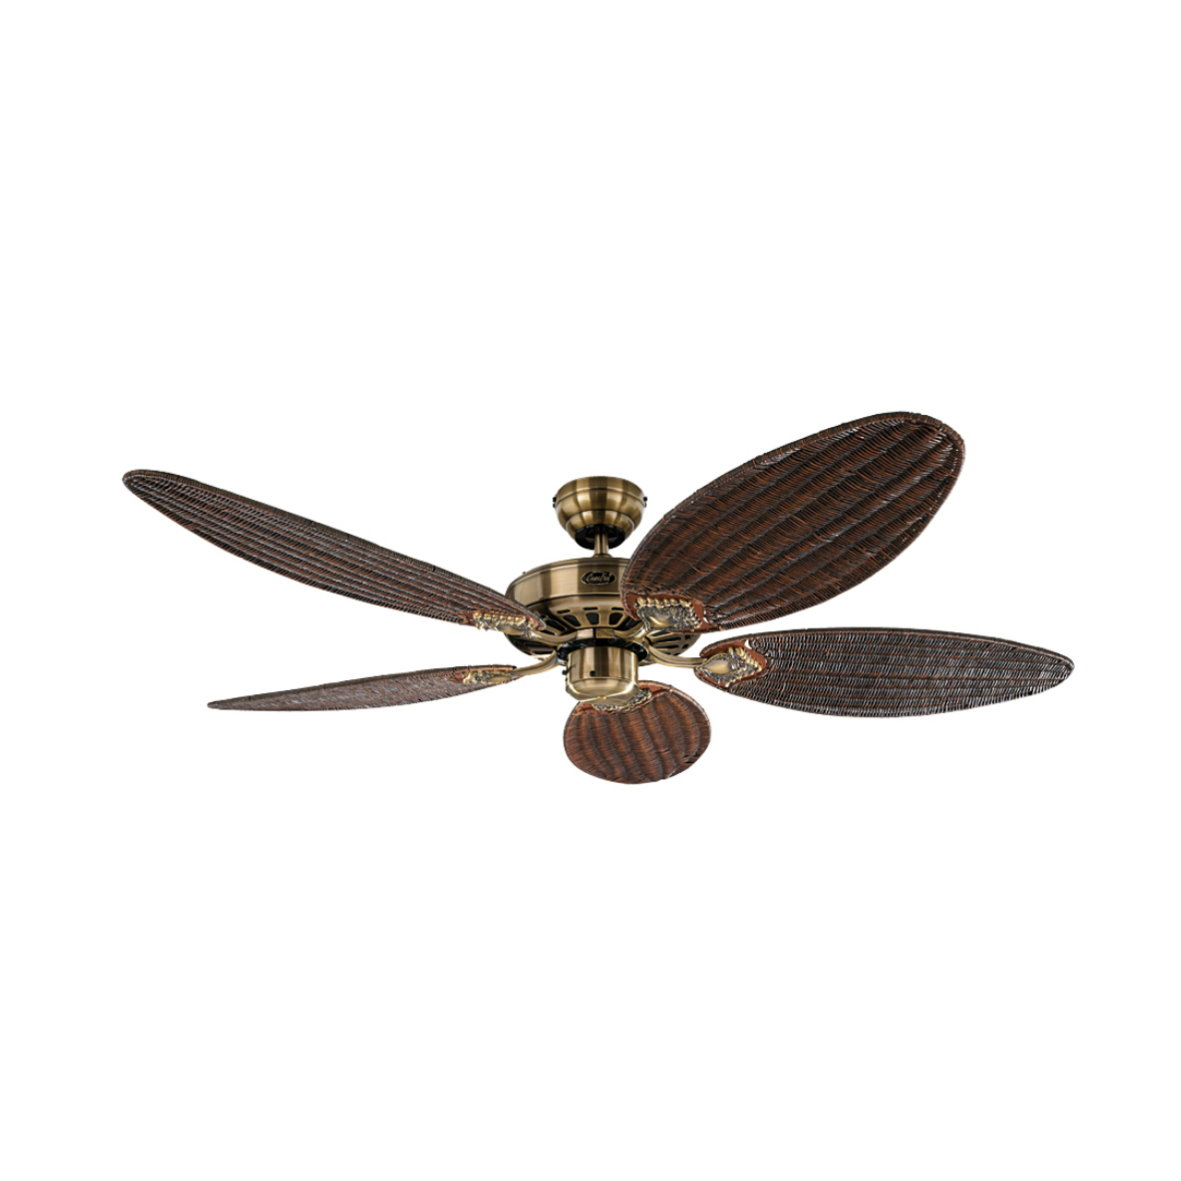 casafan deckenventilator royal classic klassiker decke ventilator ceiling fan ebay. Black Bedroom Furniture Sets. Home Design Ideas